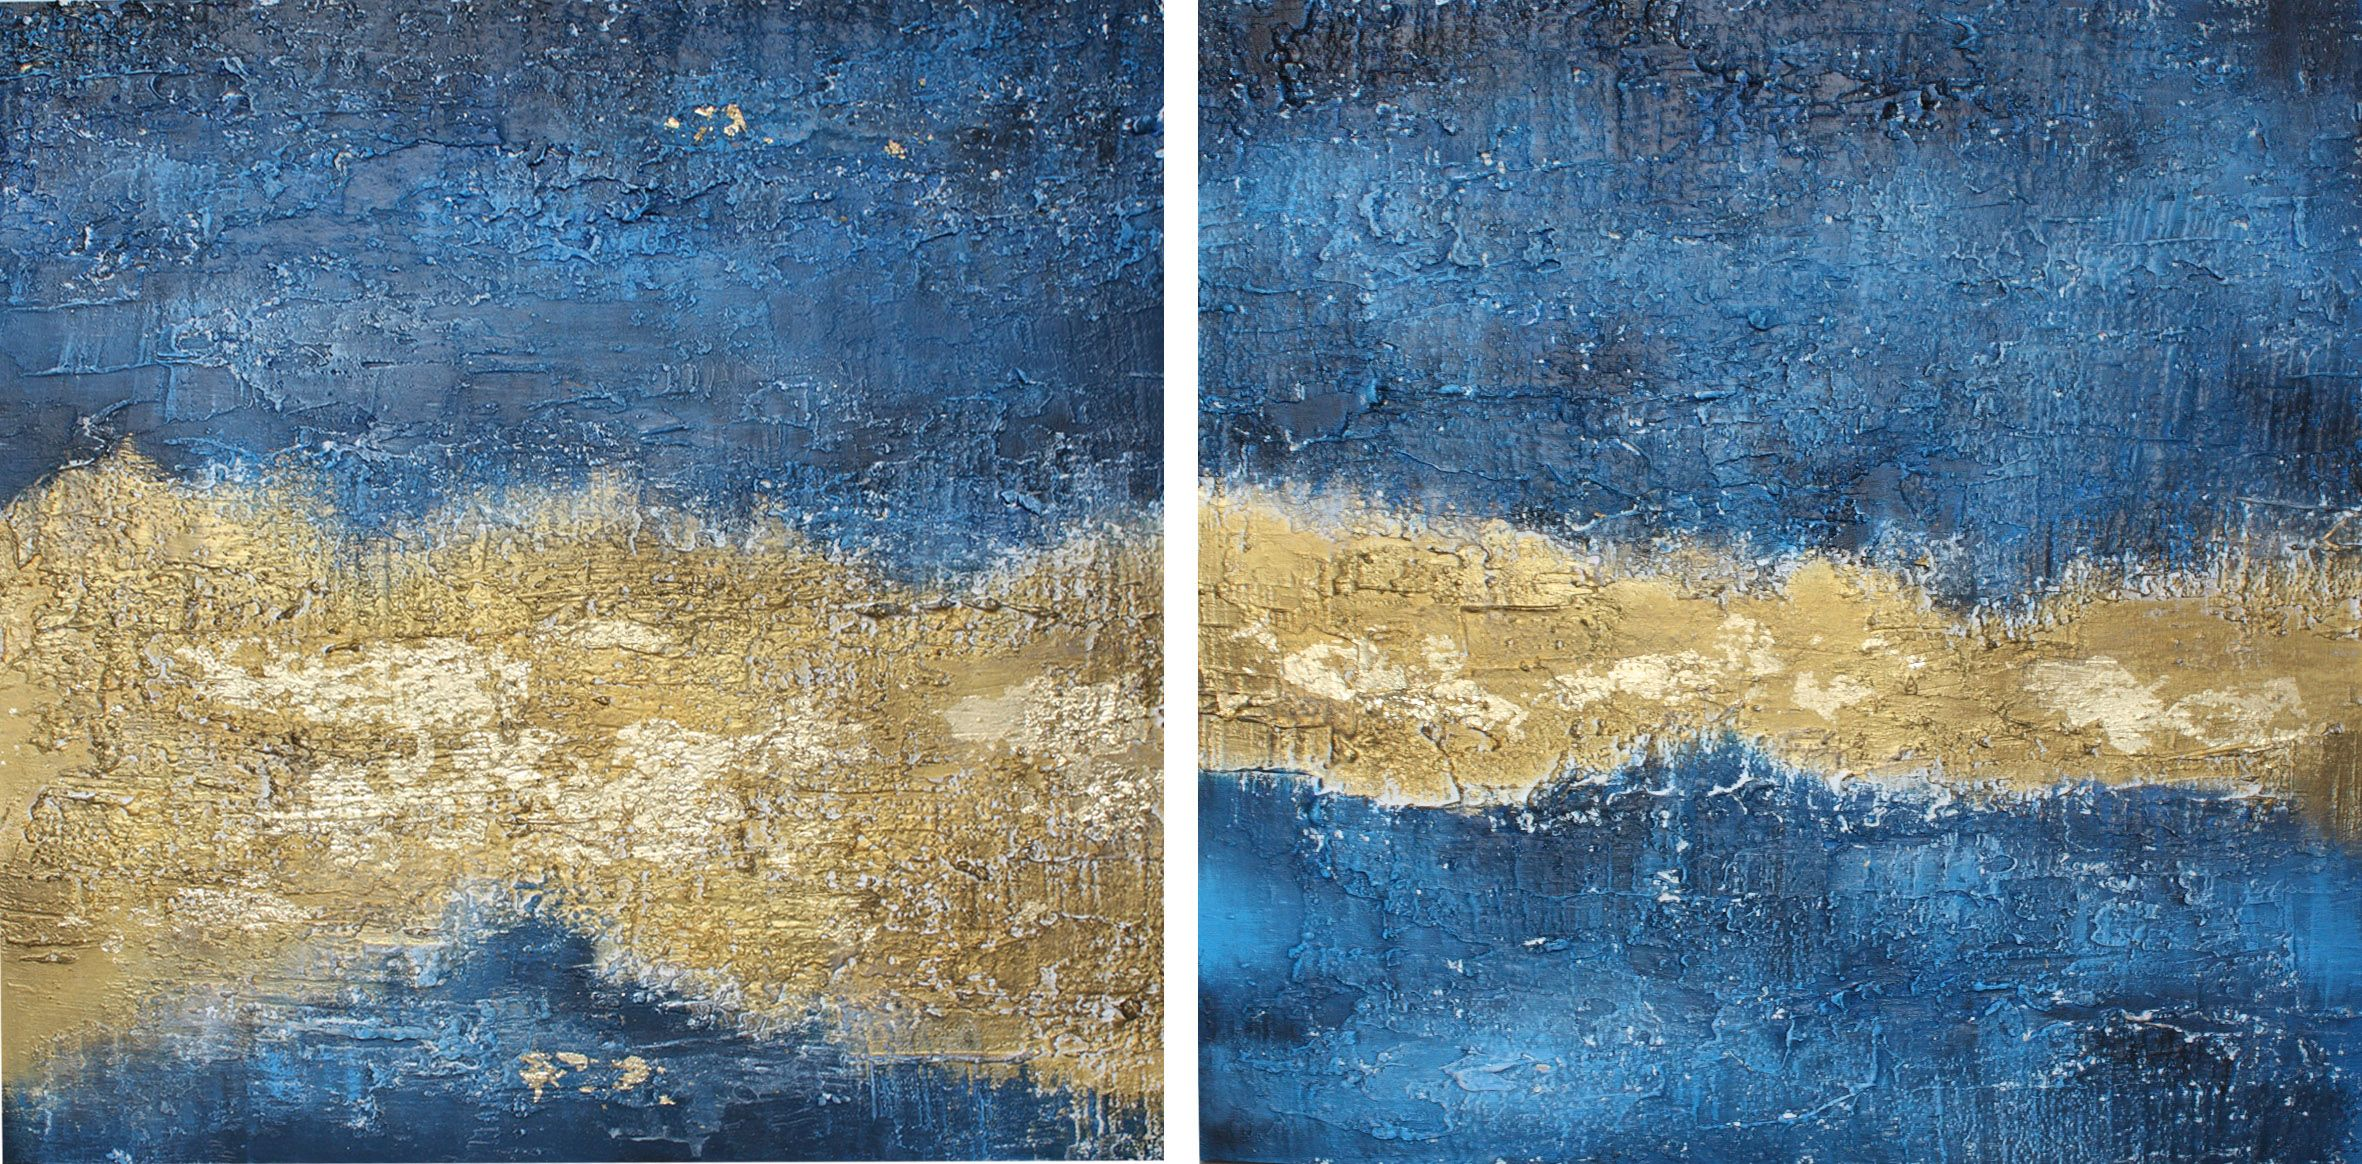 Abstract art - Blu serie. Stucco and acrylic on table wood with gold leaf. #painting #abstract #arte #art, #decor #home #interior #design #arredo, #arteastratta #materico